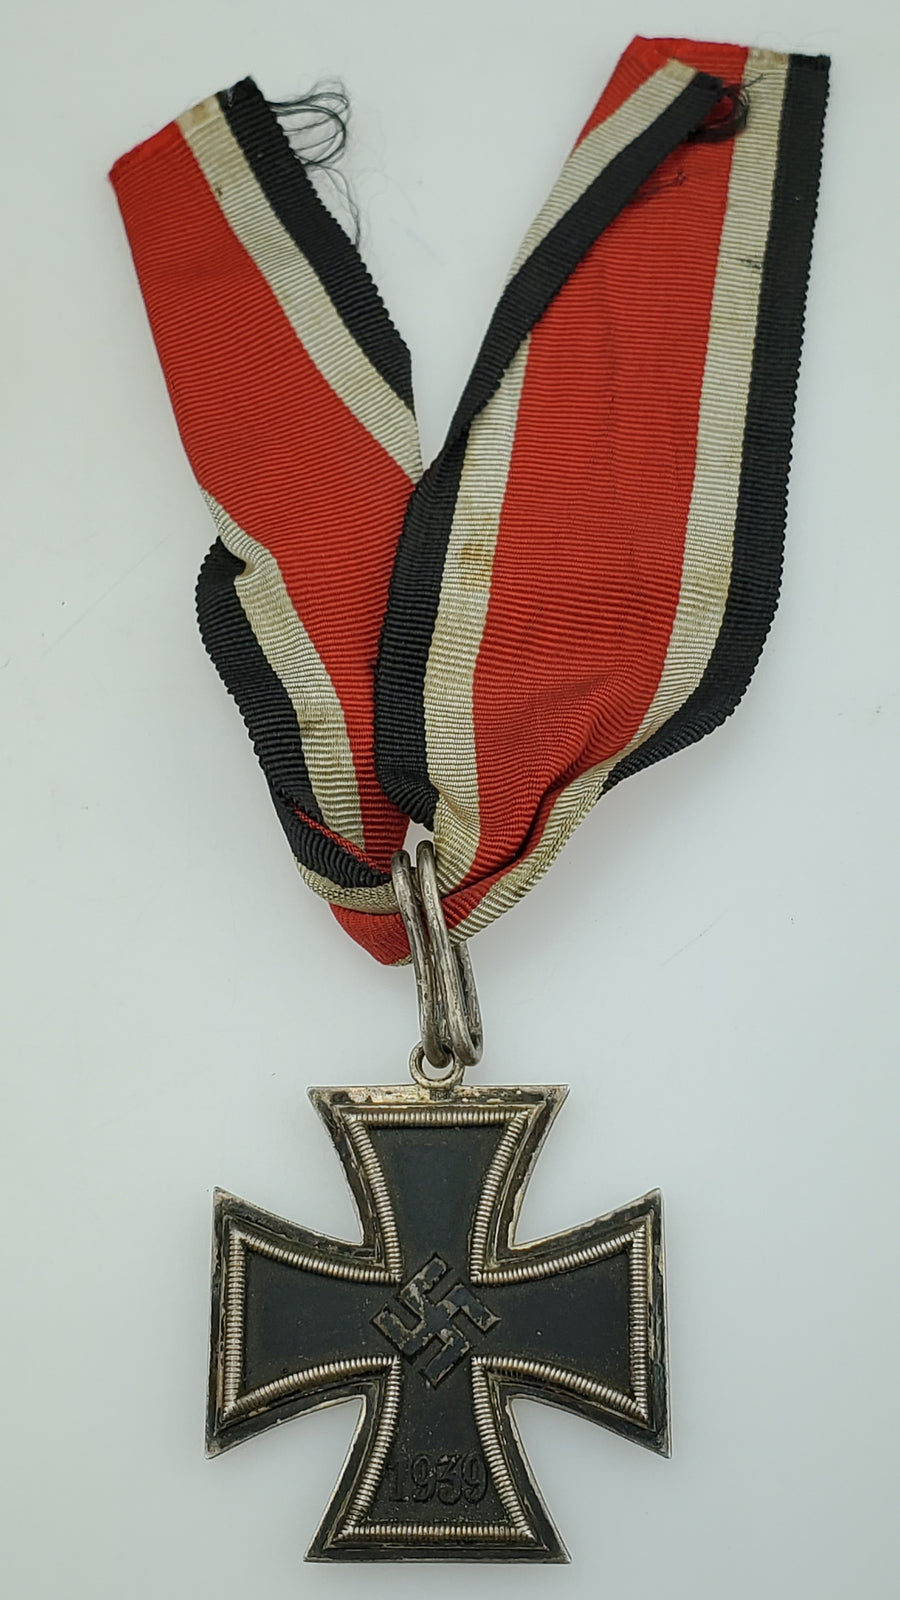 WW2 German Knights Cross of the Iron Cross 1939 - 800 Silver Content (Ritterkreuz des Eisernen Kreuzes) with Ribbon - Aces In Action